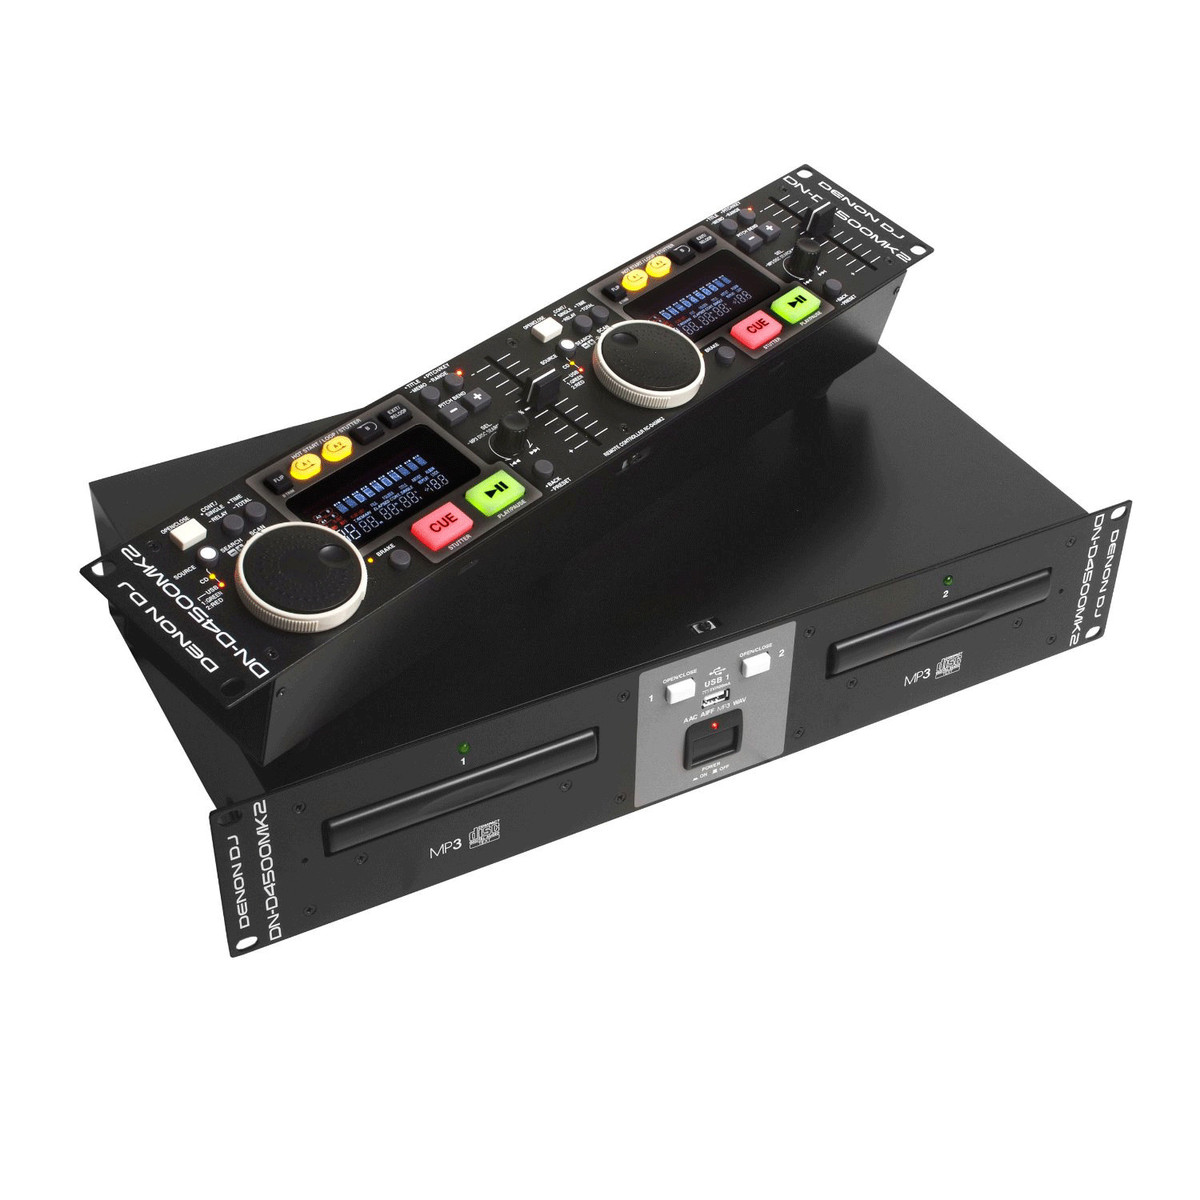 denon dj dnd4500mk2 rackmount twin cd player with usb. Black Bedroom Furniture Sets. Home Design Ideas